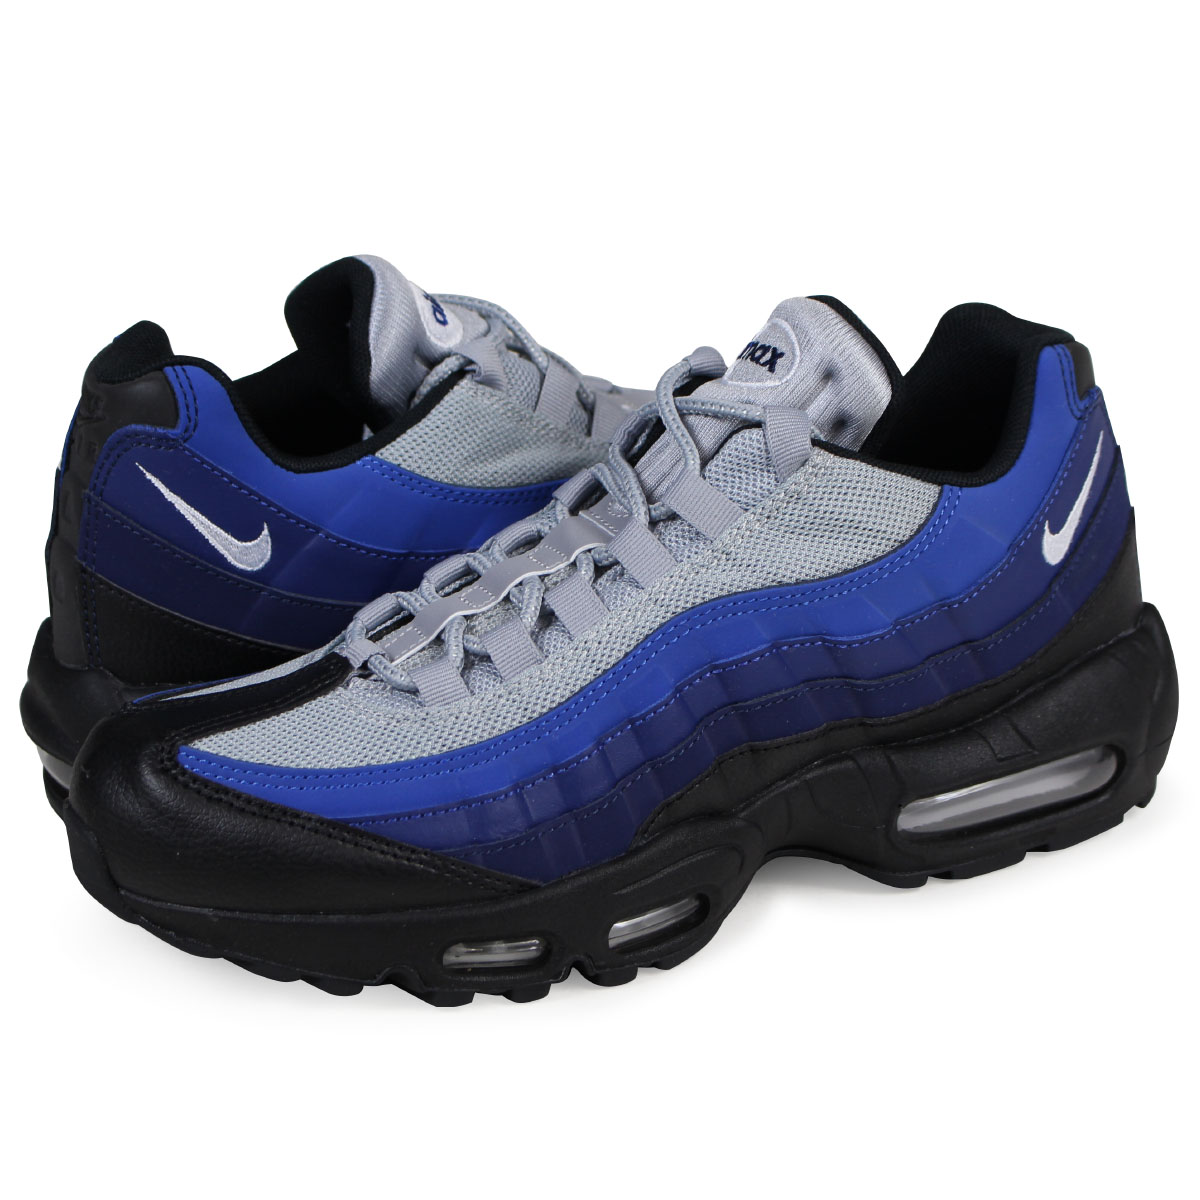 1091d1f8562e Whats up Sports  NIKE Kie Ney AMAX 95 essential sneakers AIR MAX 95 ...